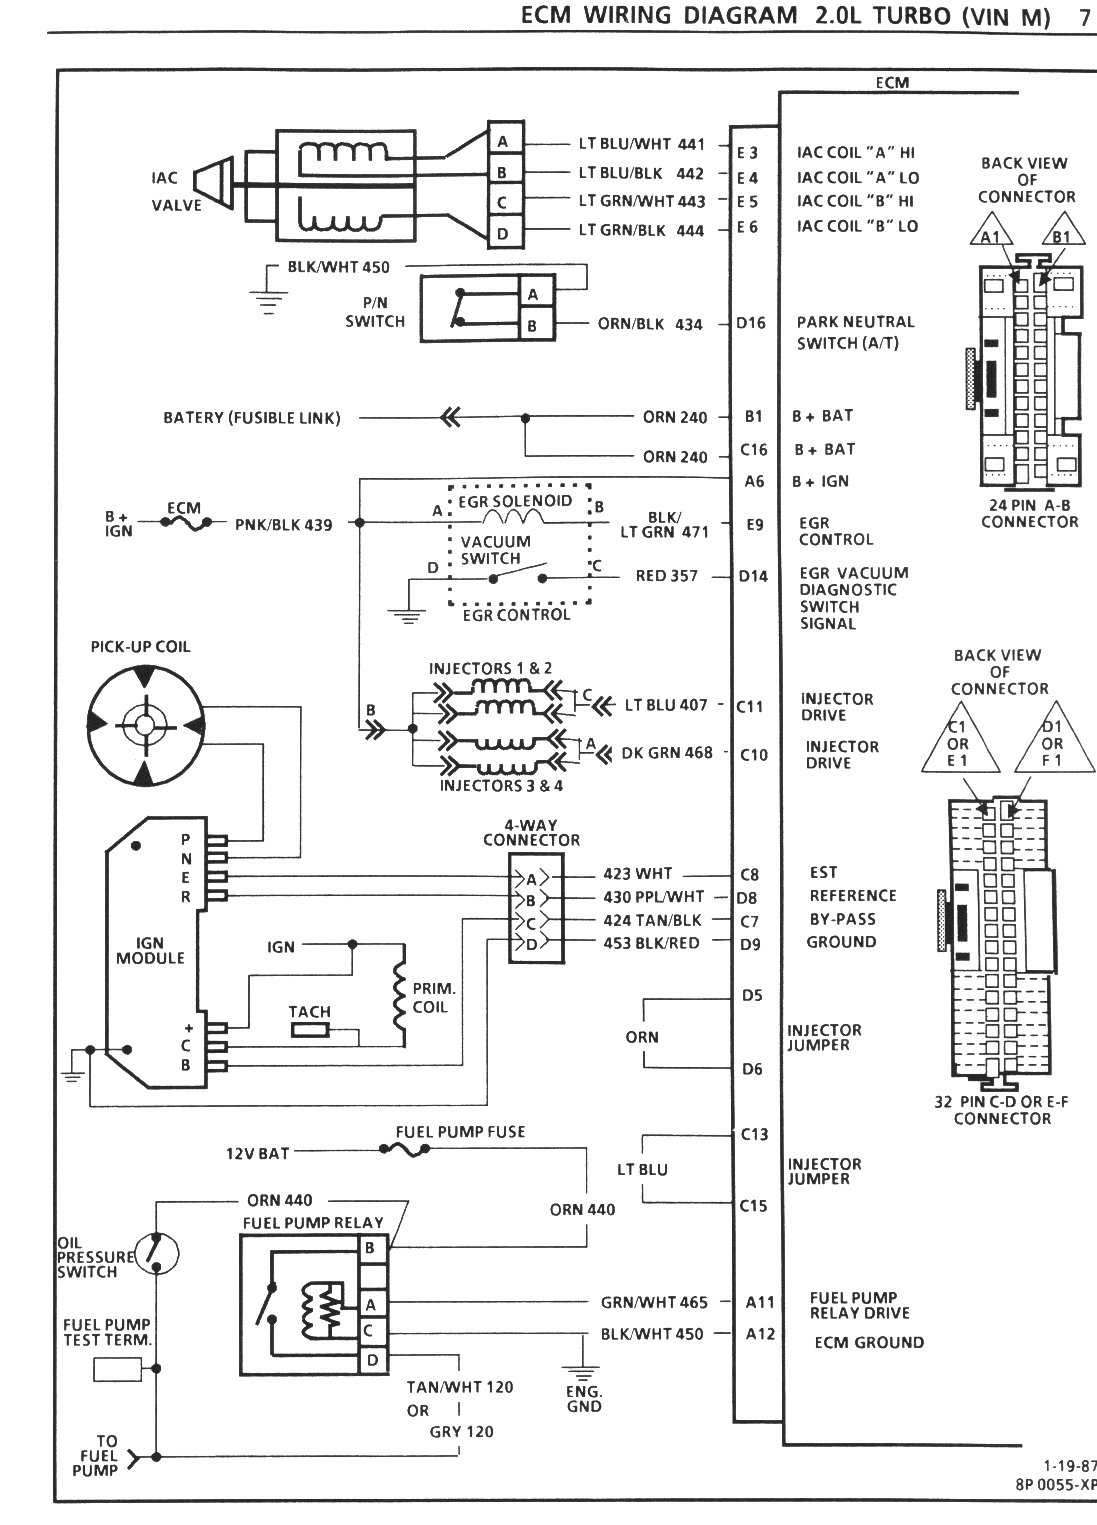 749sunbird2 nwstp forum ddec 4 ecm wiring diagram at cos-gaming.co